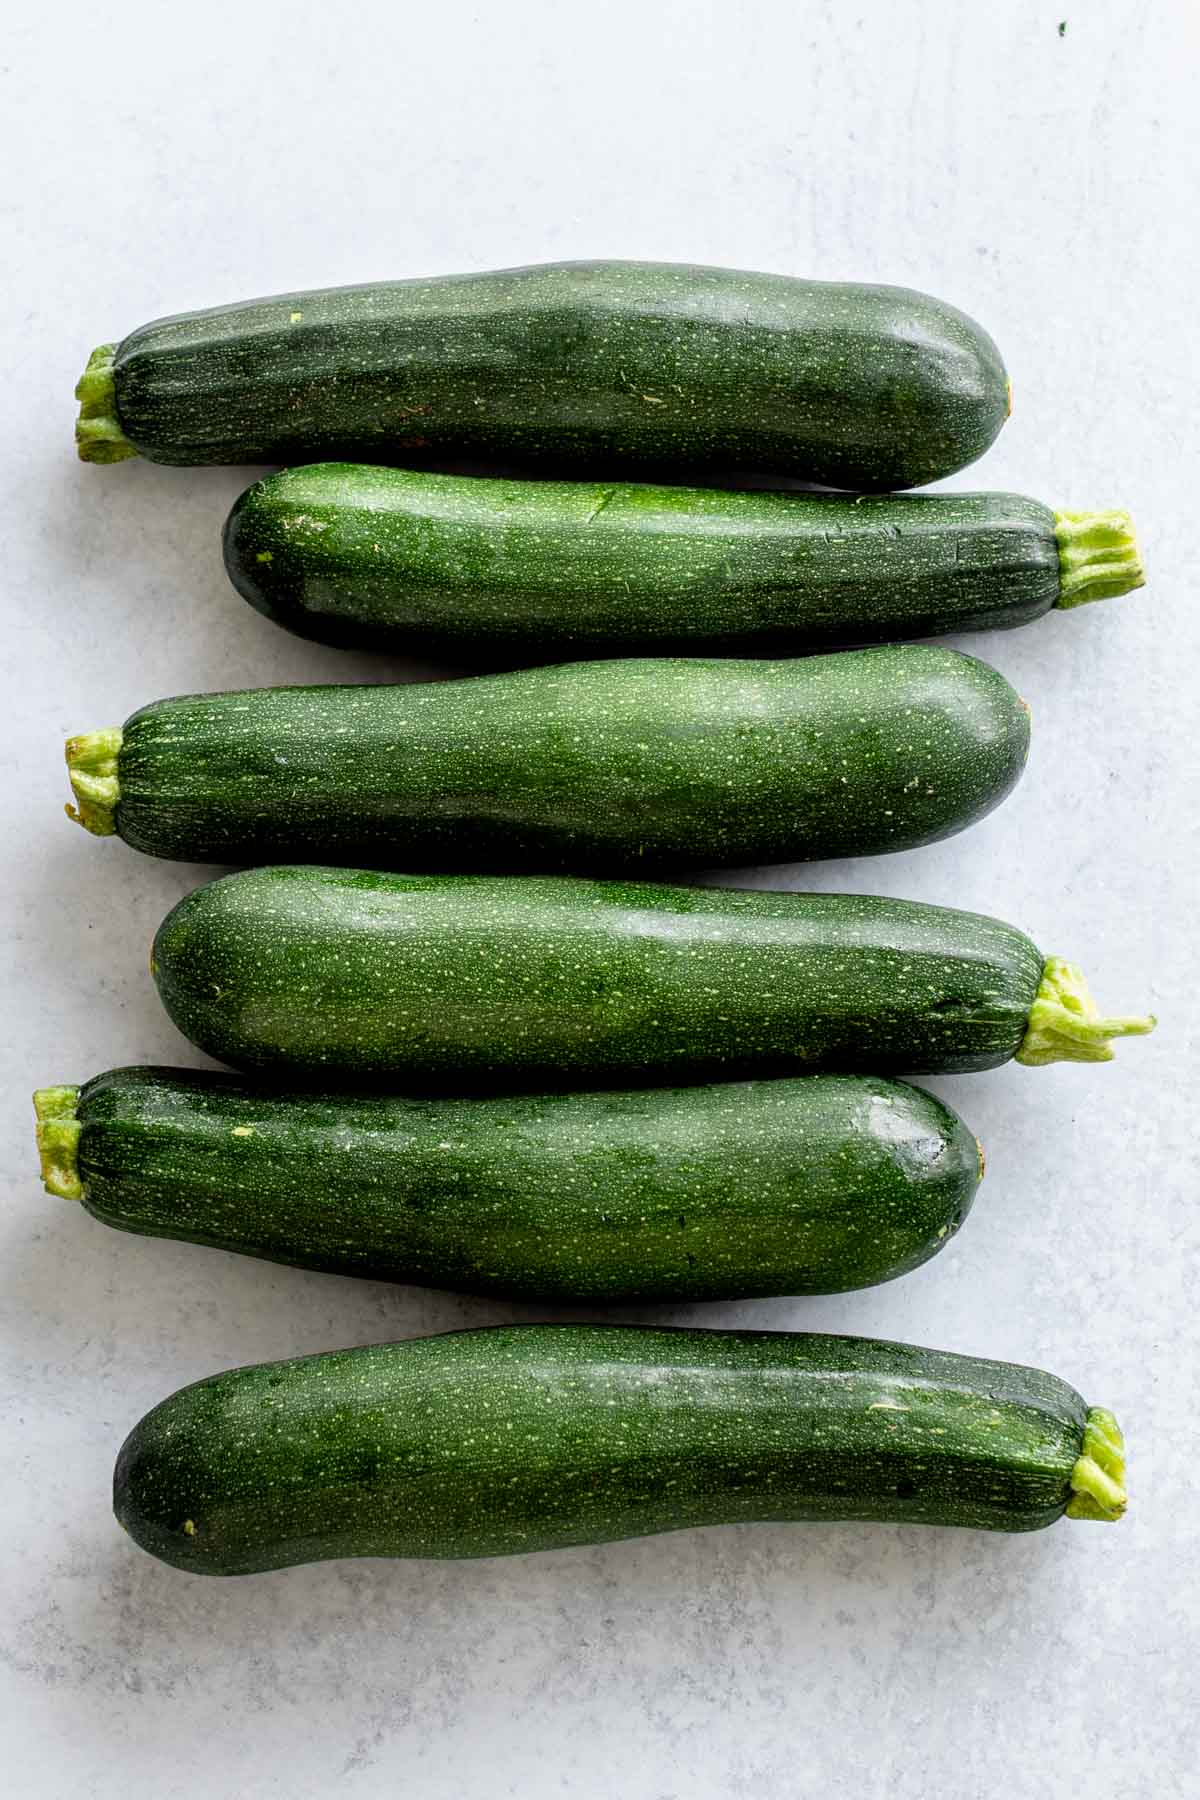 six medium, deep green zucchinis on a light colored table